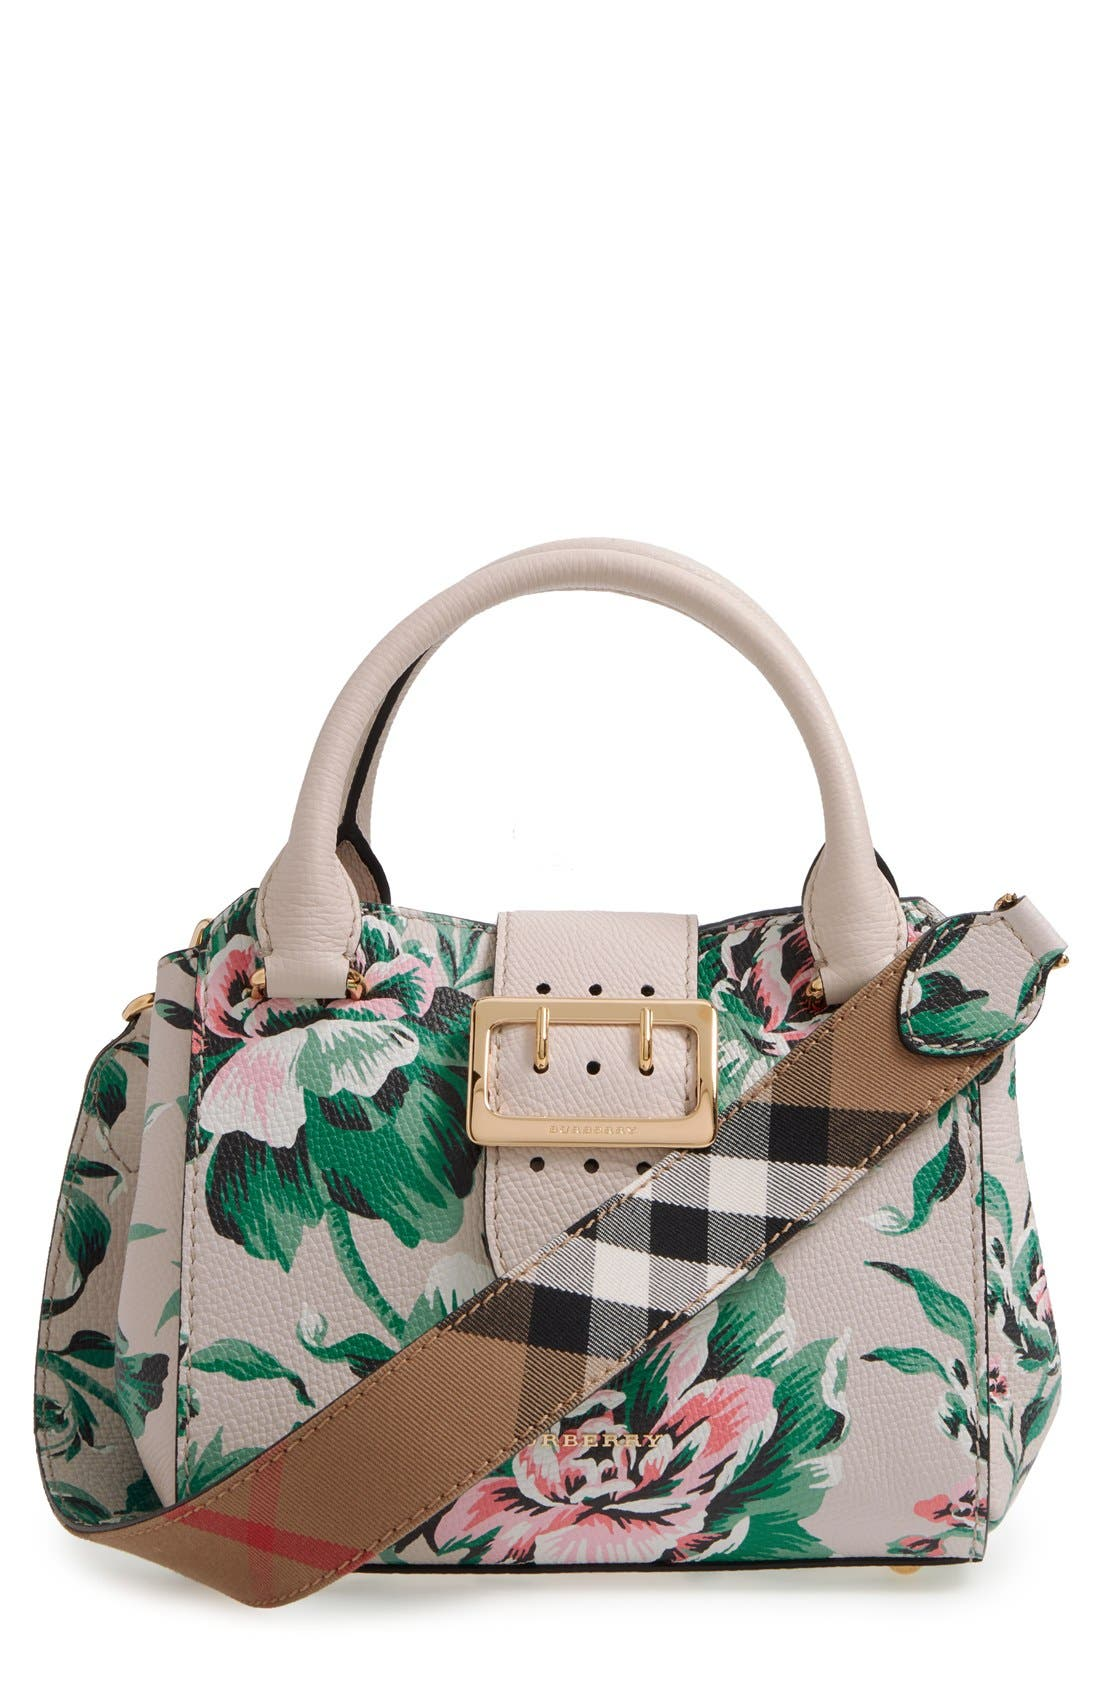 Small Buckle Floral Calfskin Leather Satchel,                             Main thumbnail 1, color,                             Emerald Green